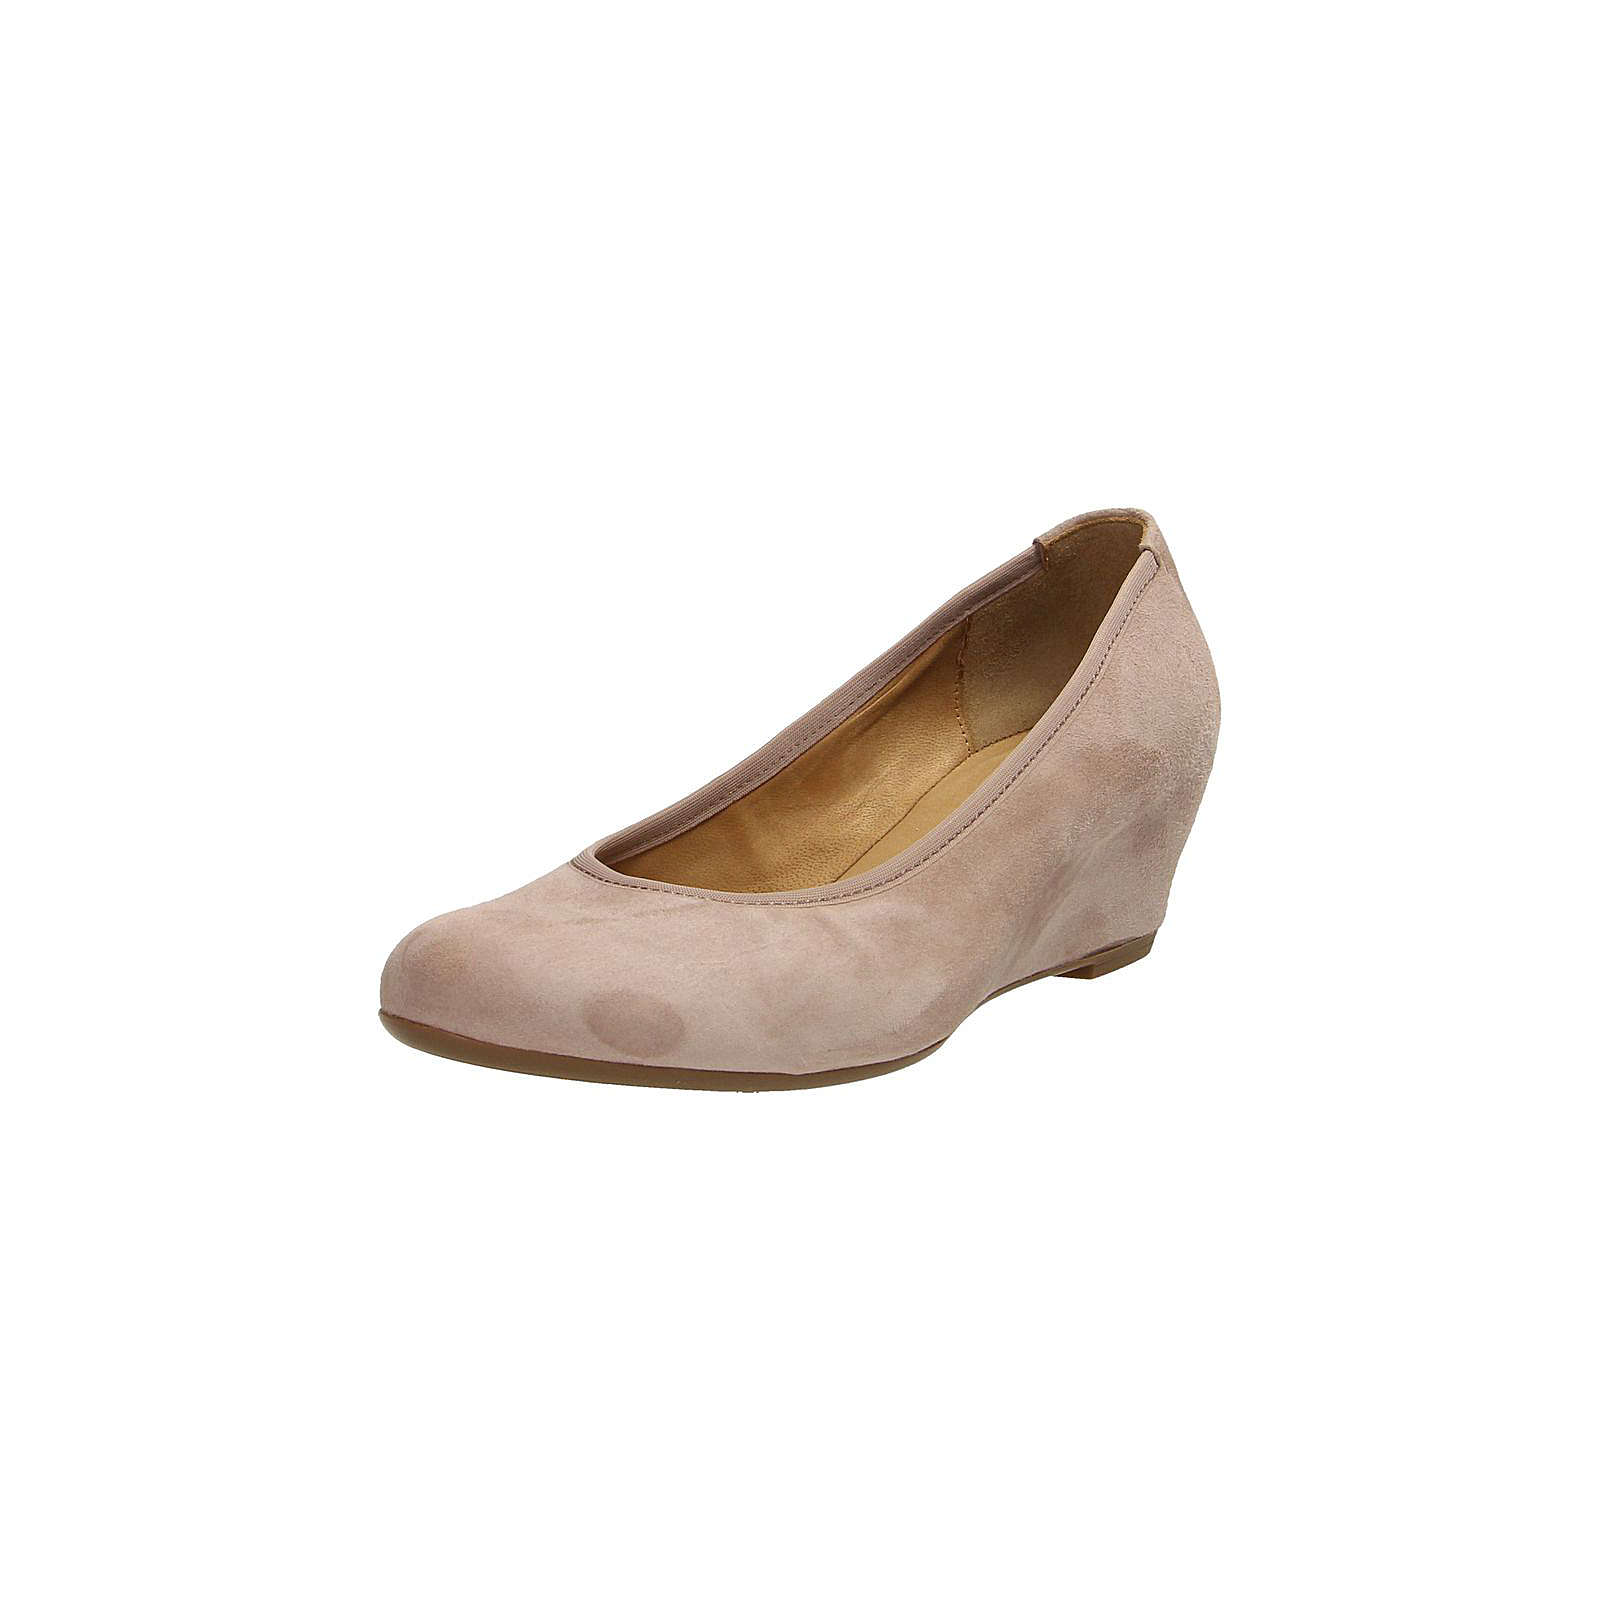 a74c9d452a98d Tamaris Pumps Rosa rosa Damen | Pumps & High Heels